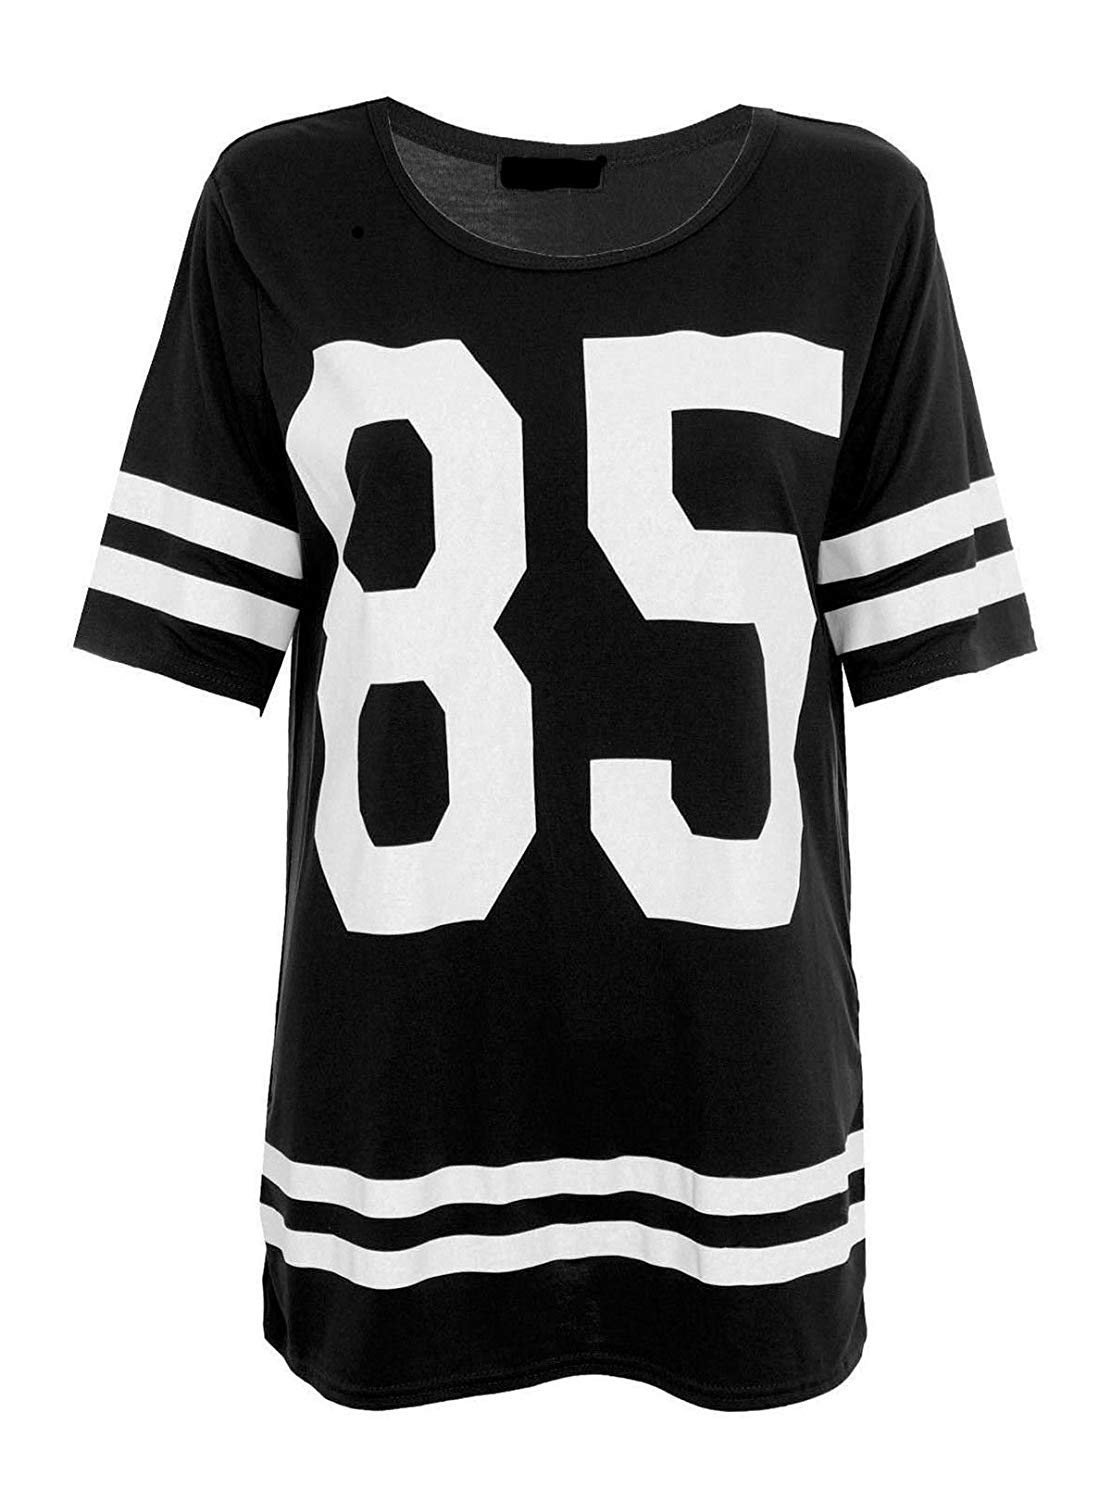 1d22da00912ca Get Quotations · Rimi Hanger Womens Short Sleeve 85 Printed Oversized Baggy  Top Ladies Round Neck Striped Baseball T